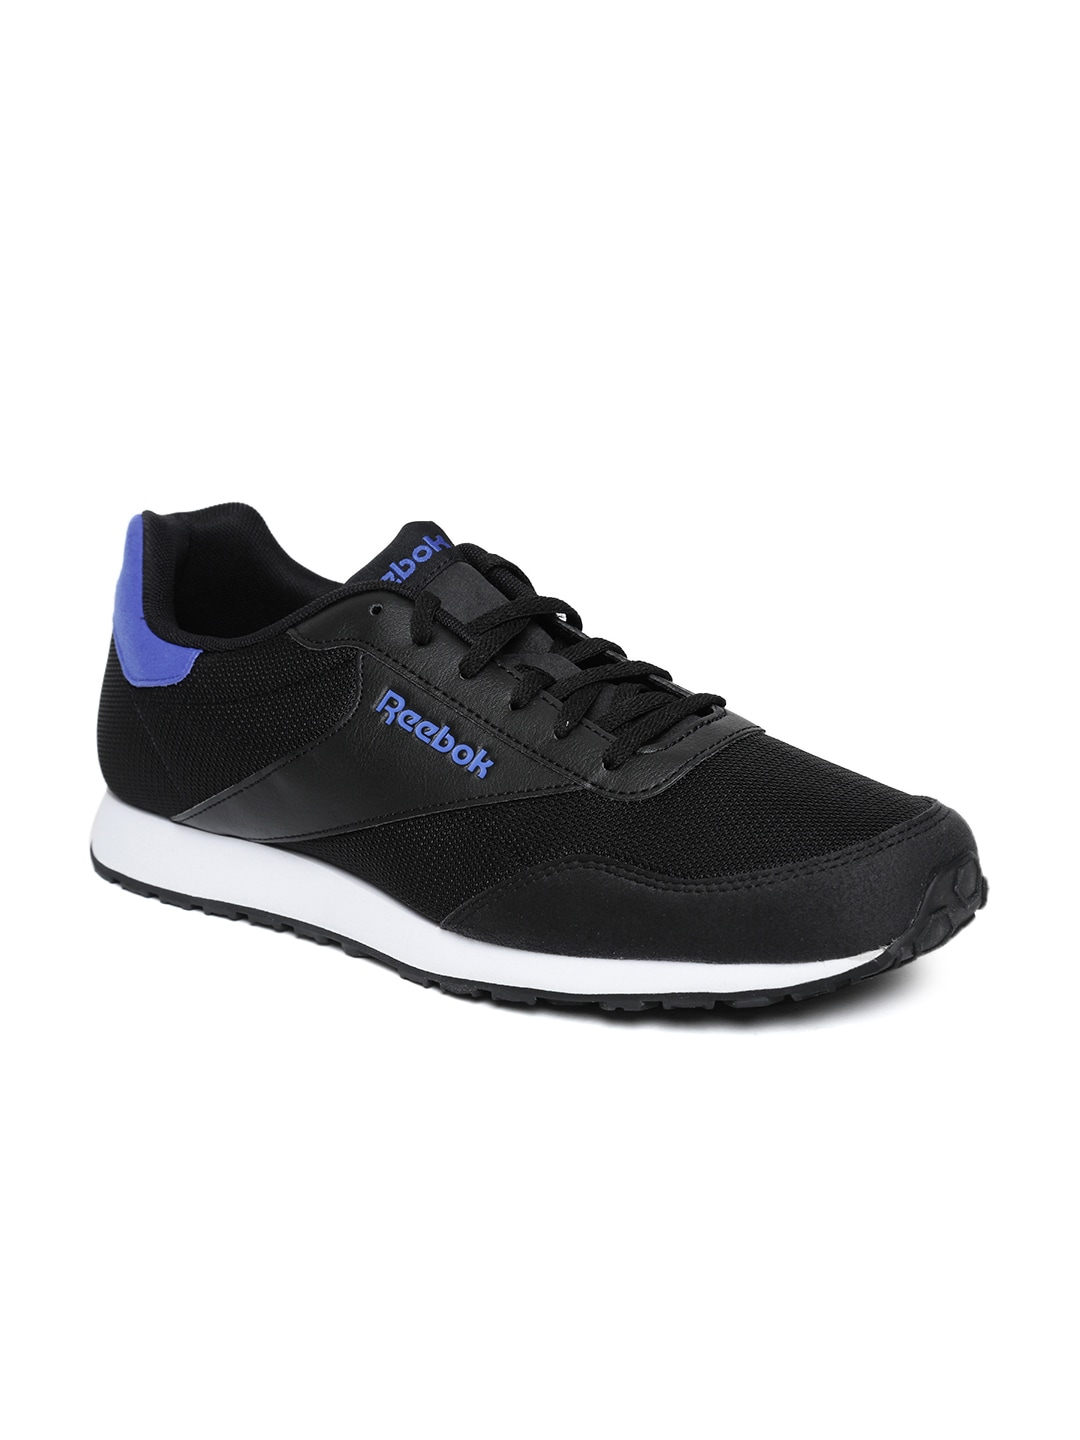 6da62dd97880ad Reebok Shoes Original Casual - Buy Reebok Shoes Original Casual online in  India